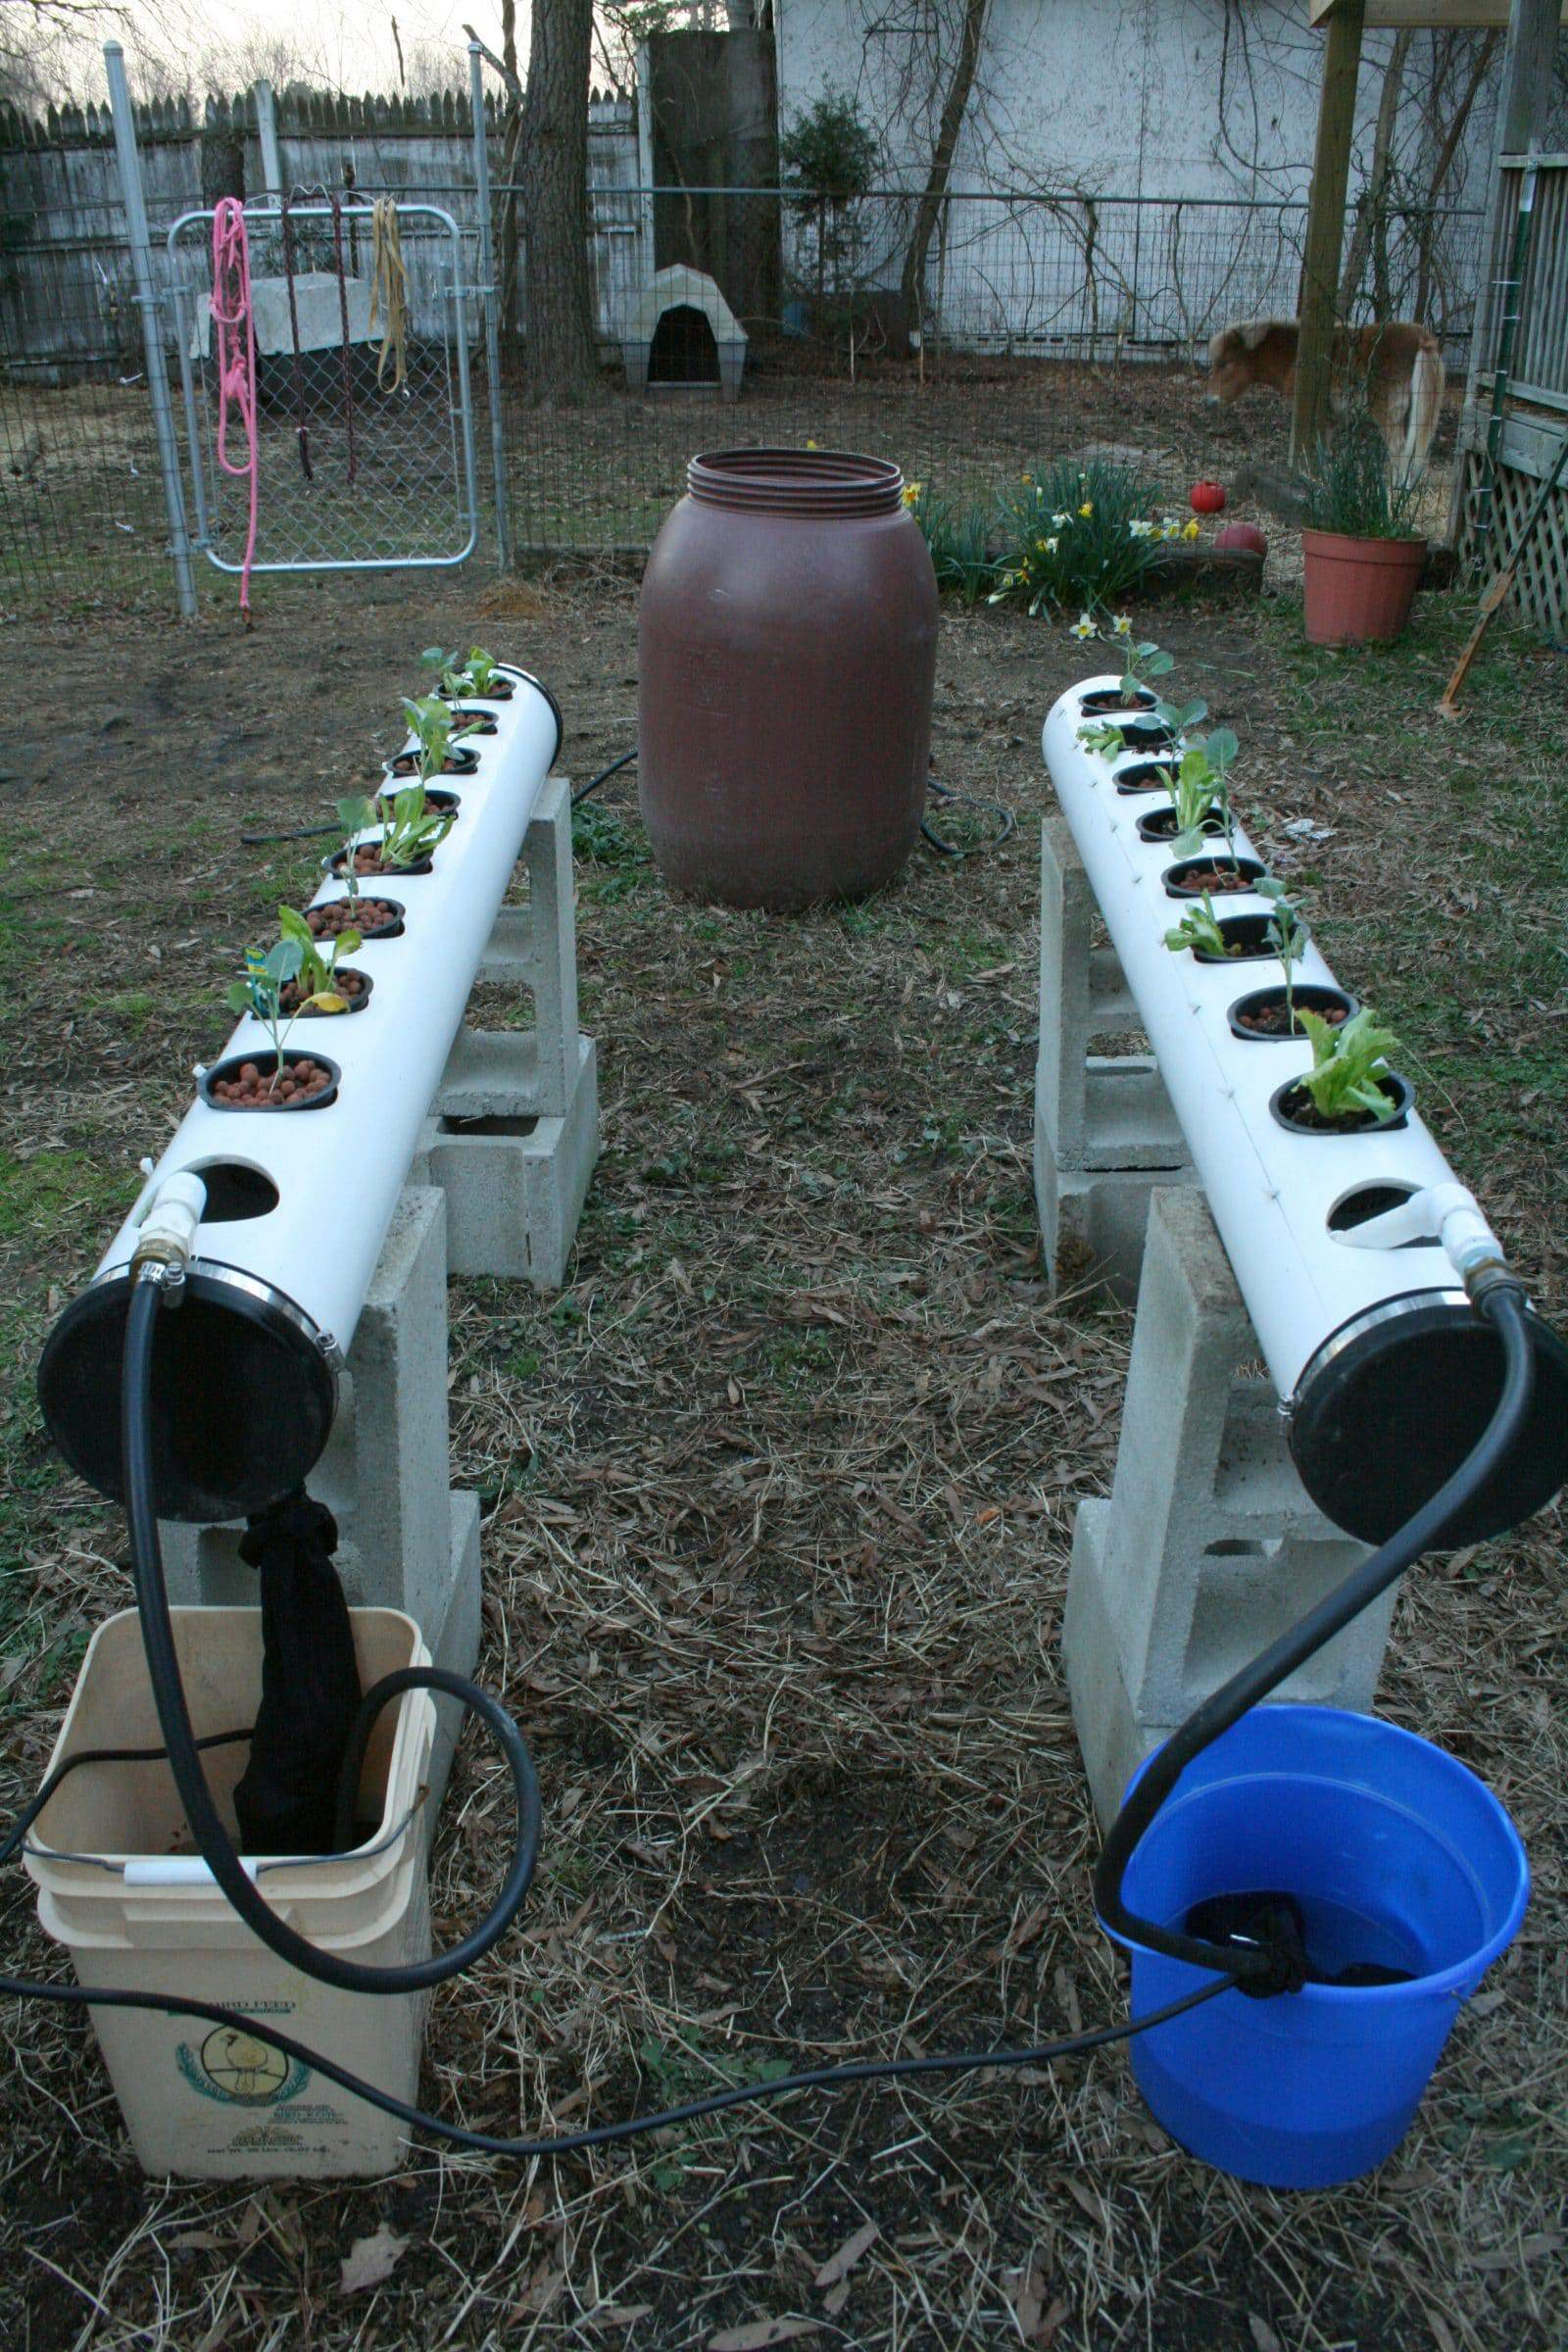 two sets of nutrient film technique systems growing green plants